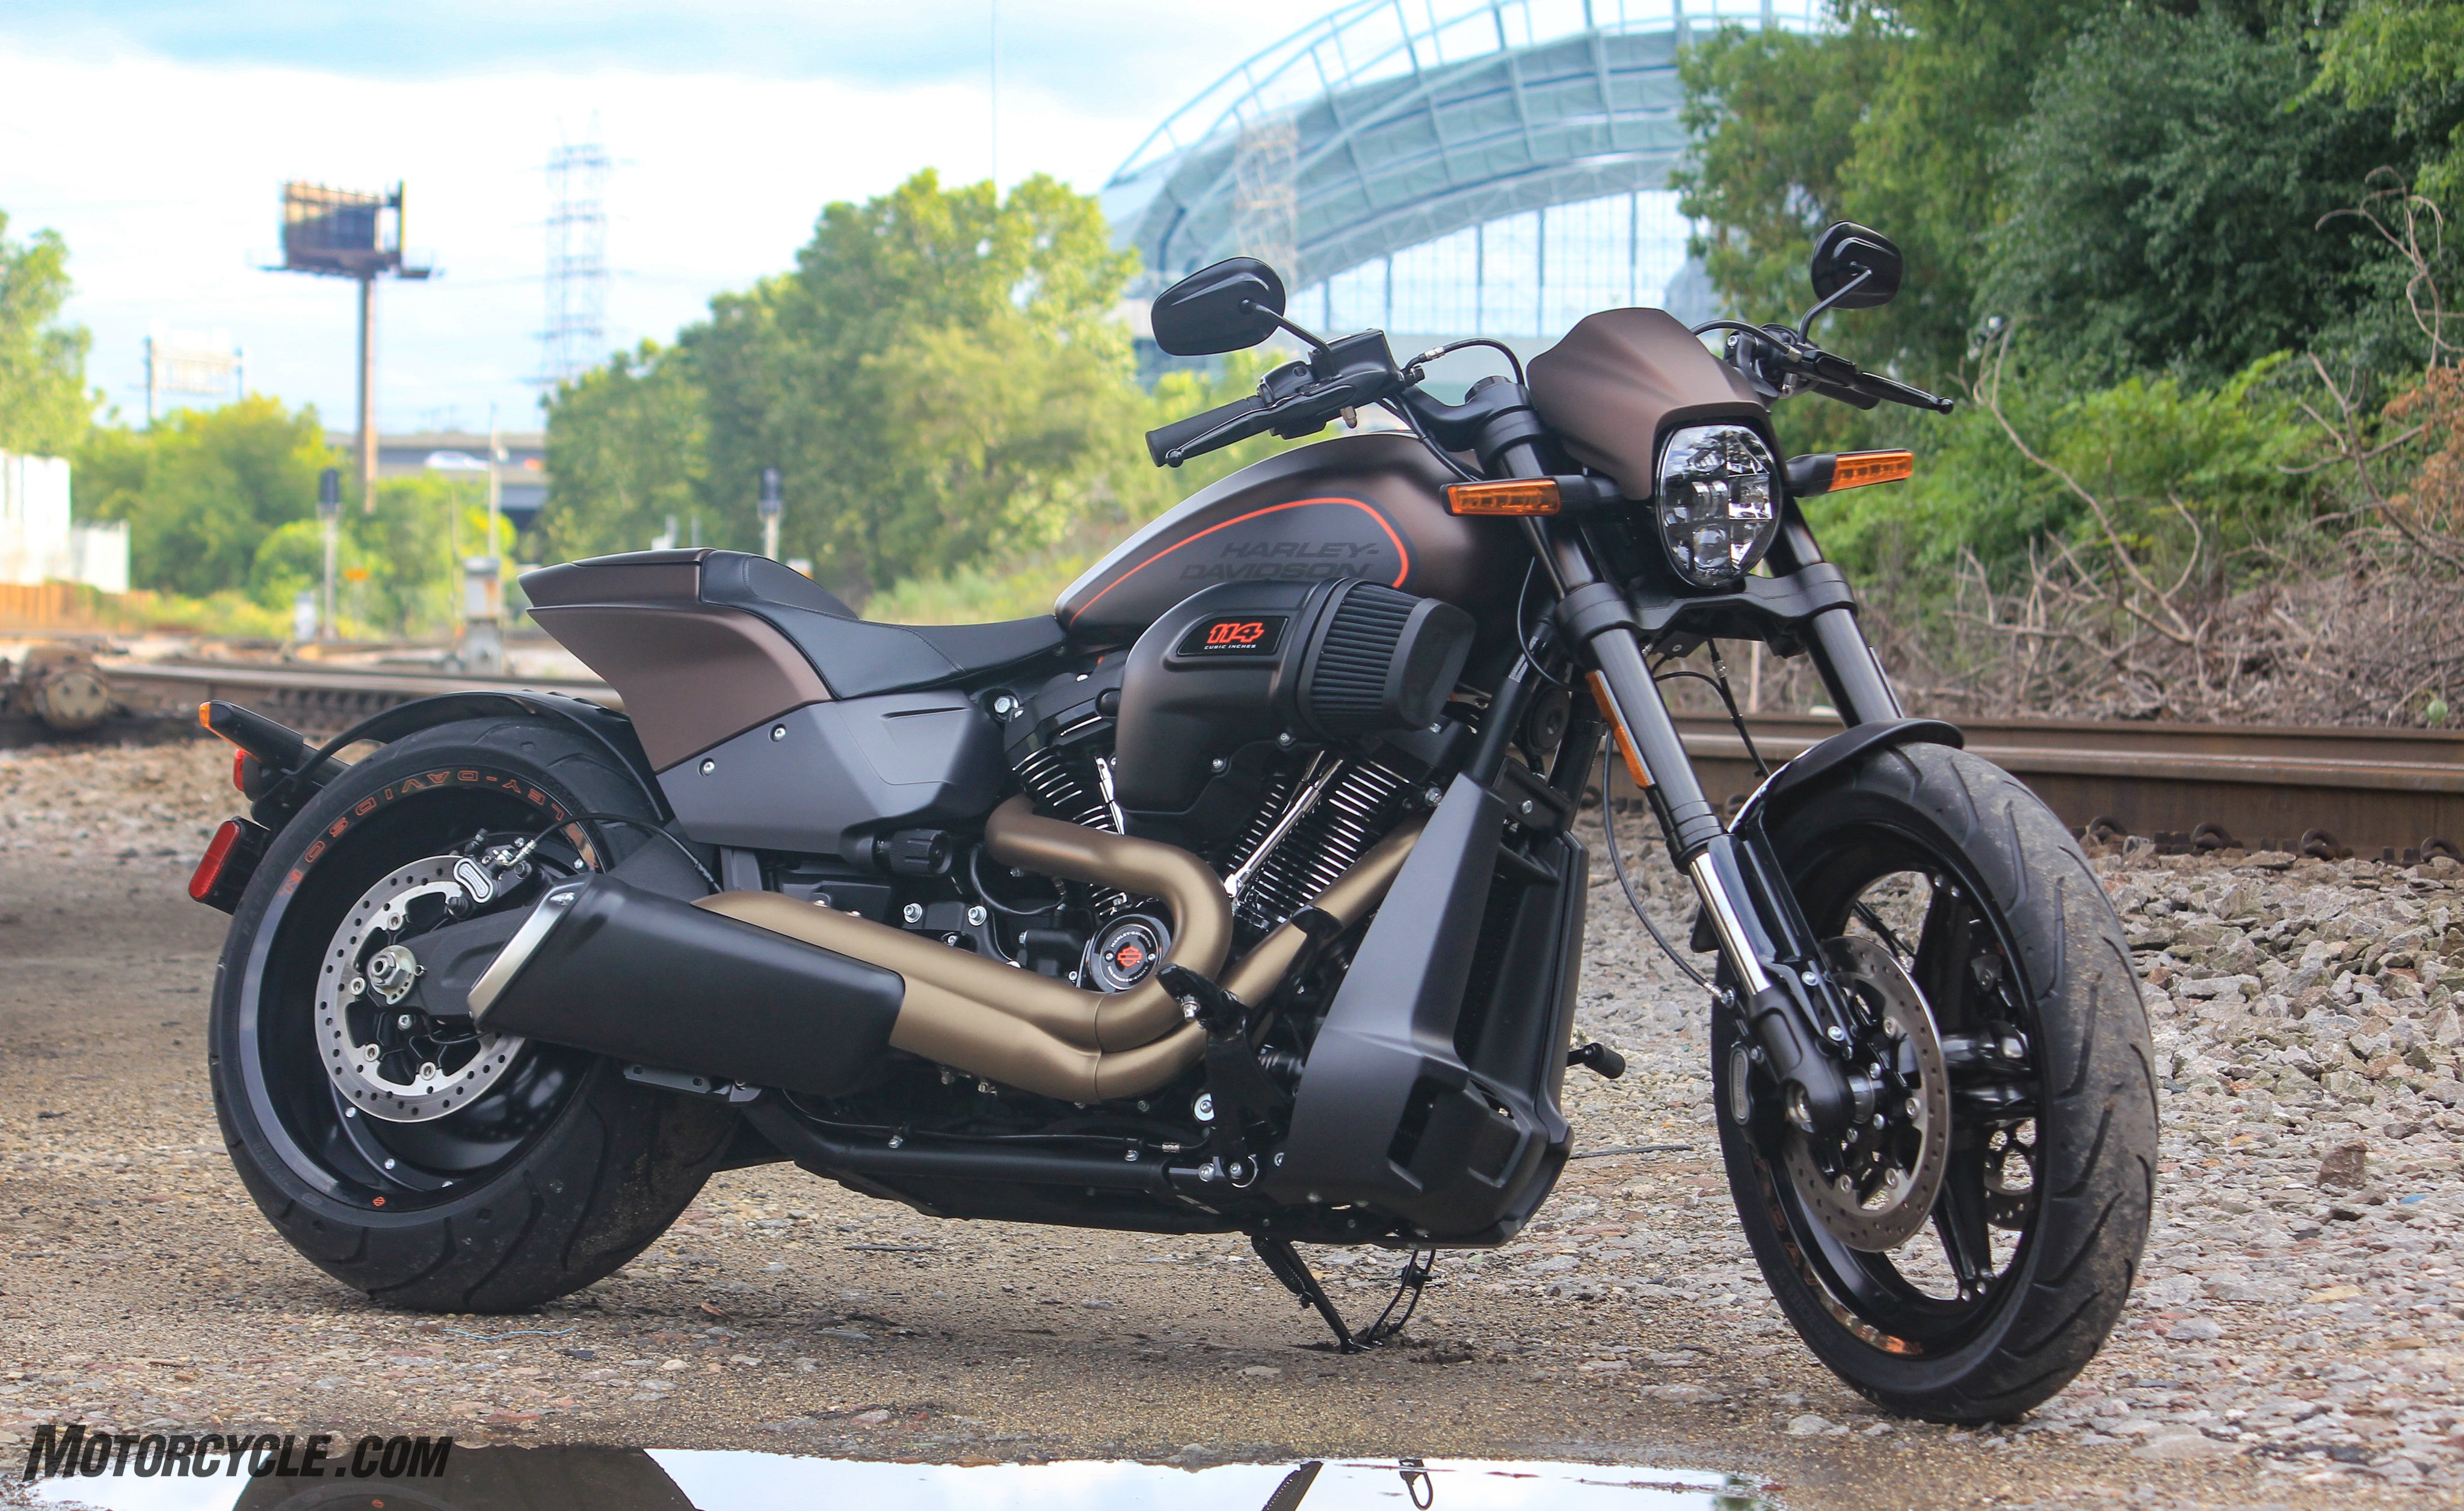 2019 Harley-Davidson FXDR 114 Review – First Ride